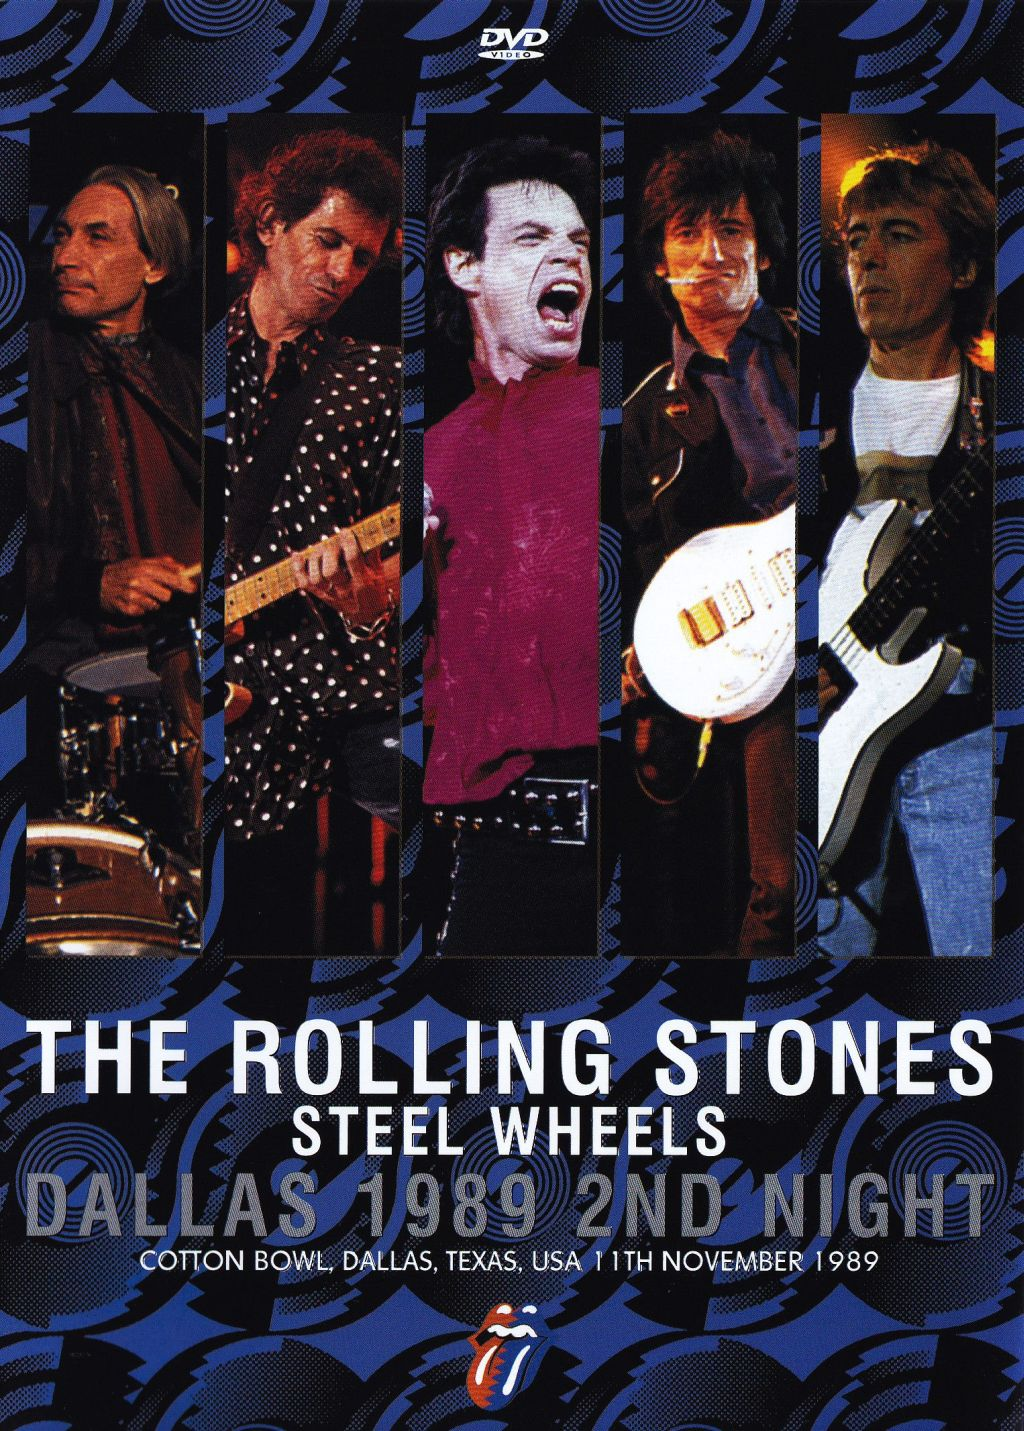 rolling stones    dallas 1989 2nd night    2dvd  u2013 giginjapan